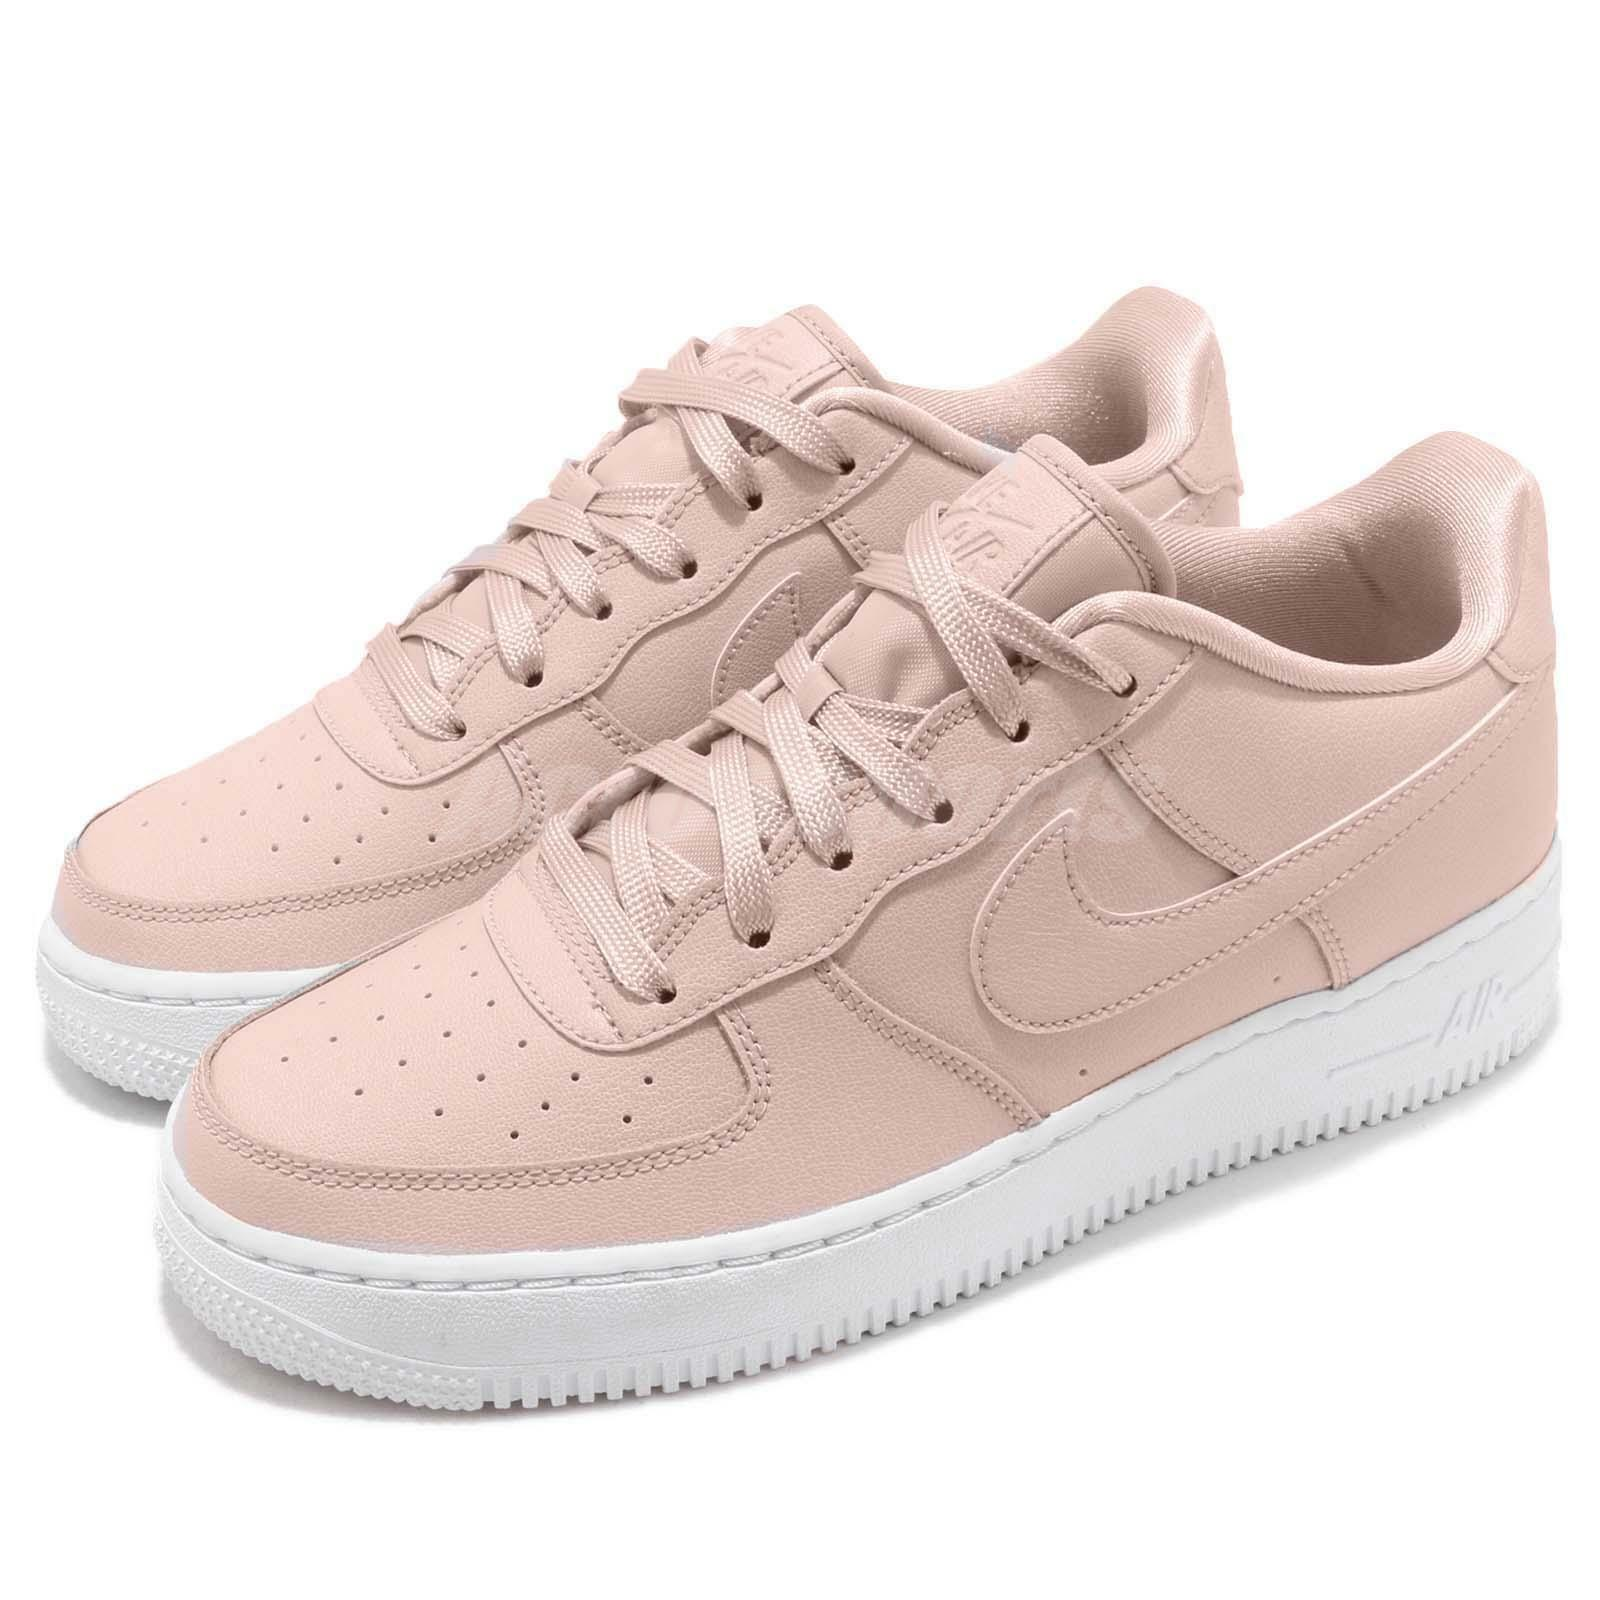 size 40 83c0b 4d996 where to buy nike air force 1 ss gs af1 af1 gs silt red pink white